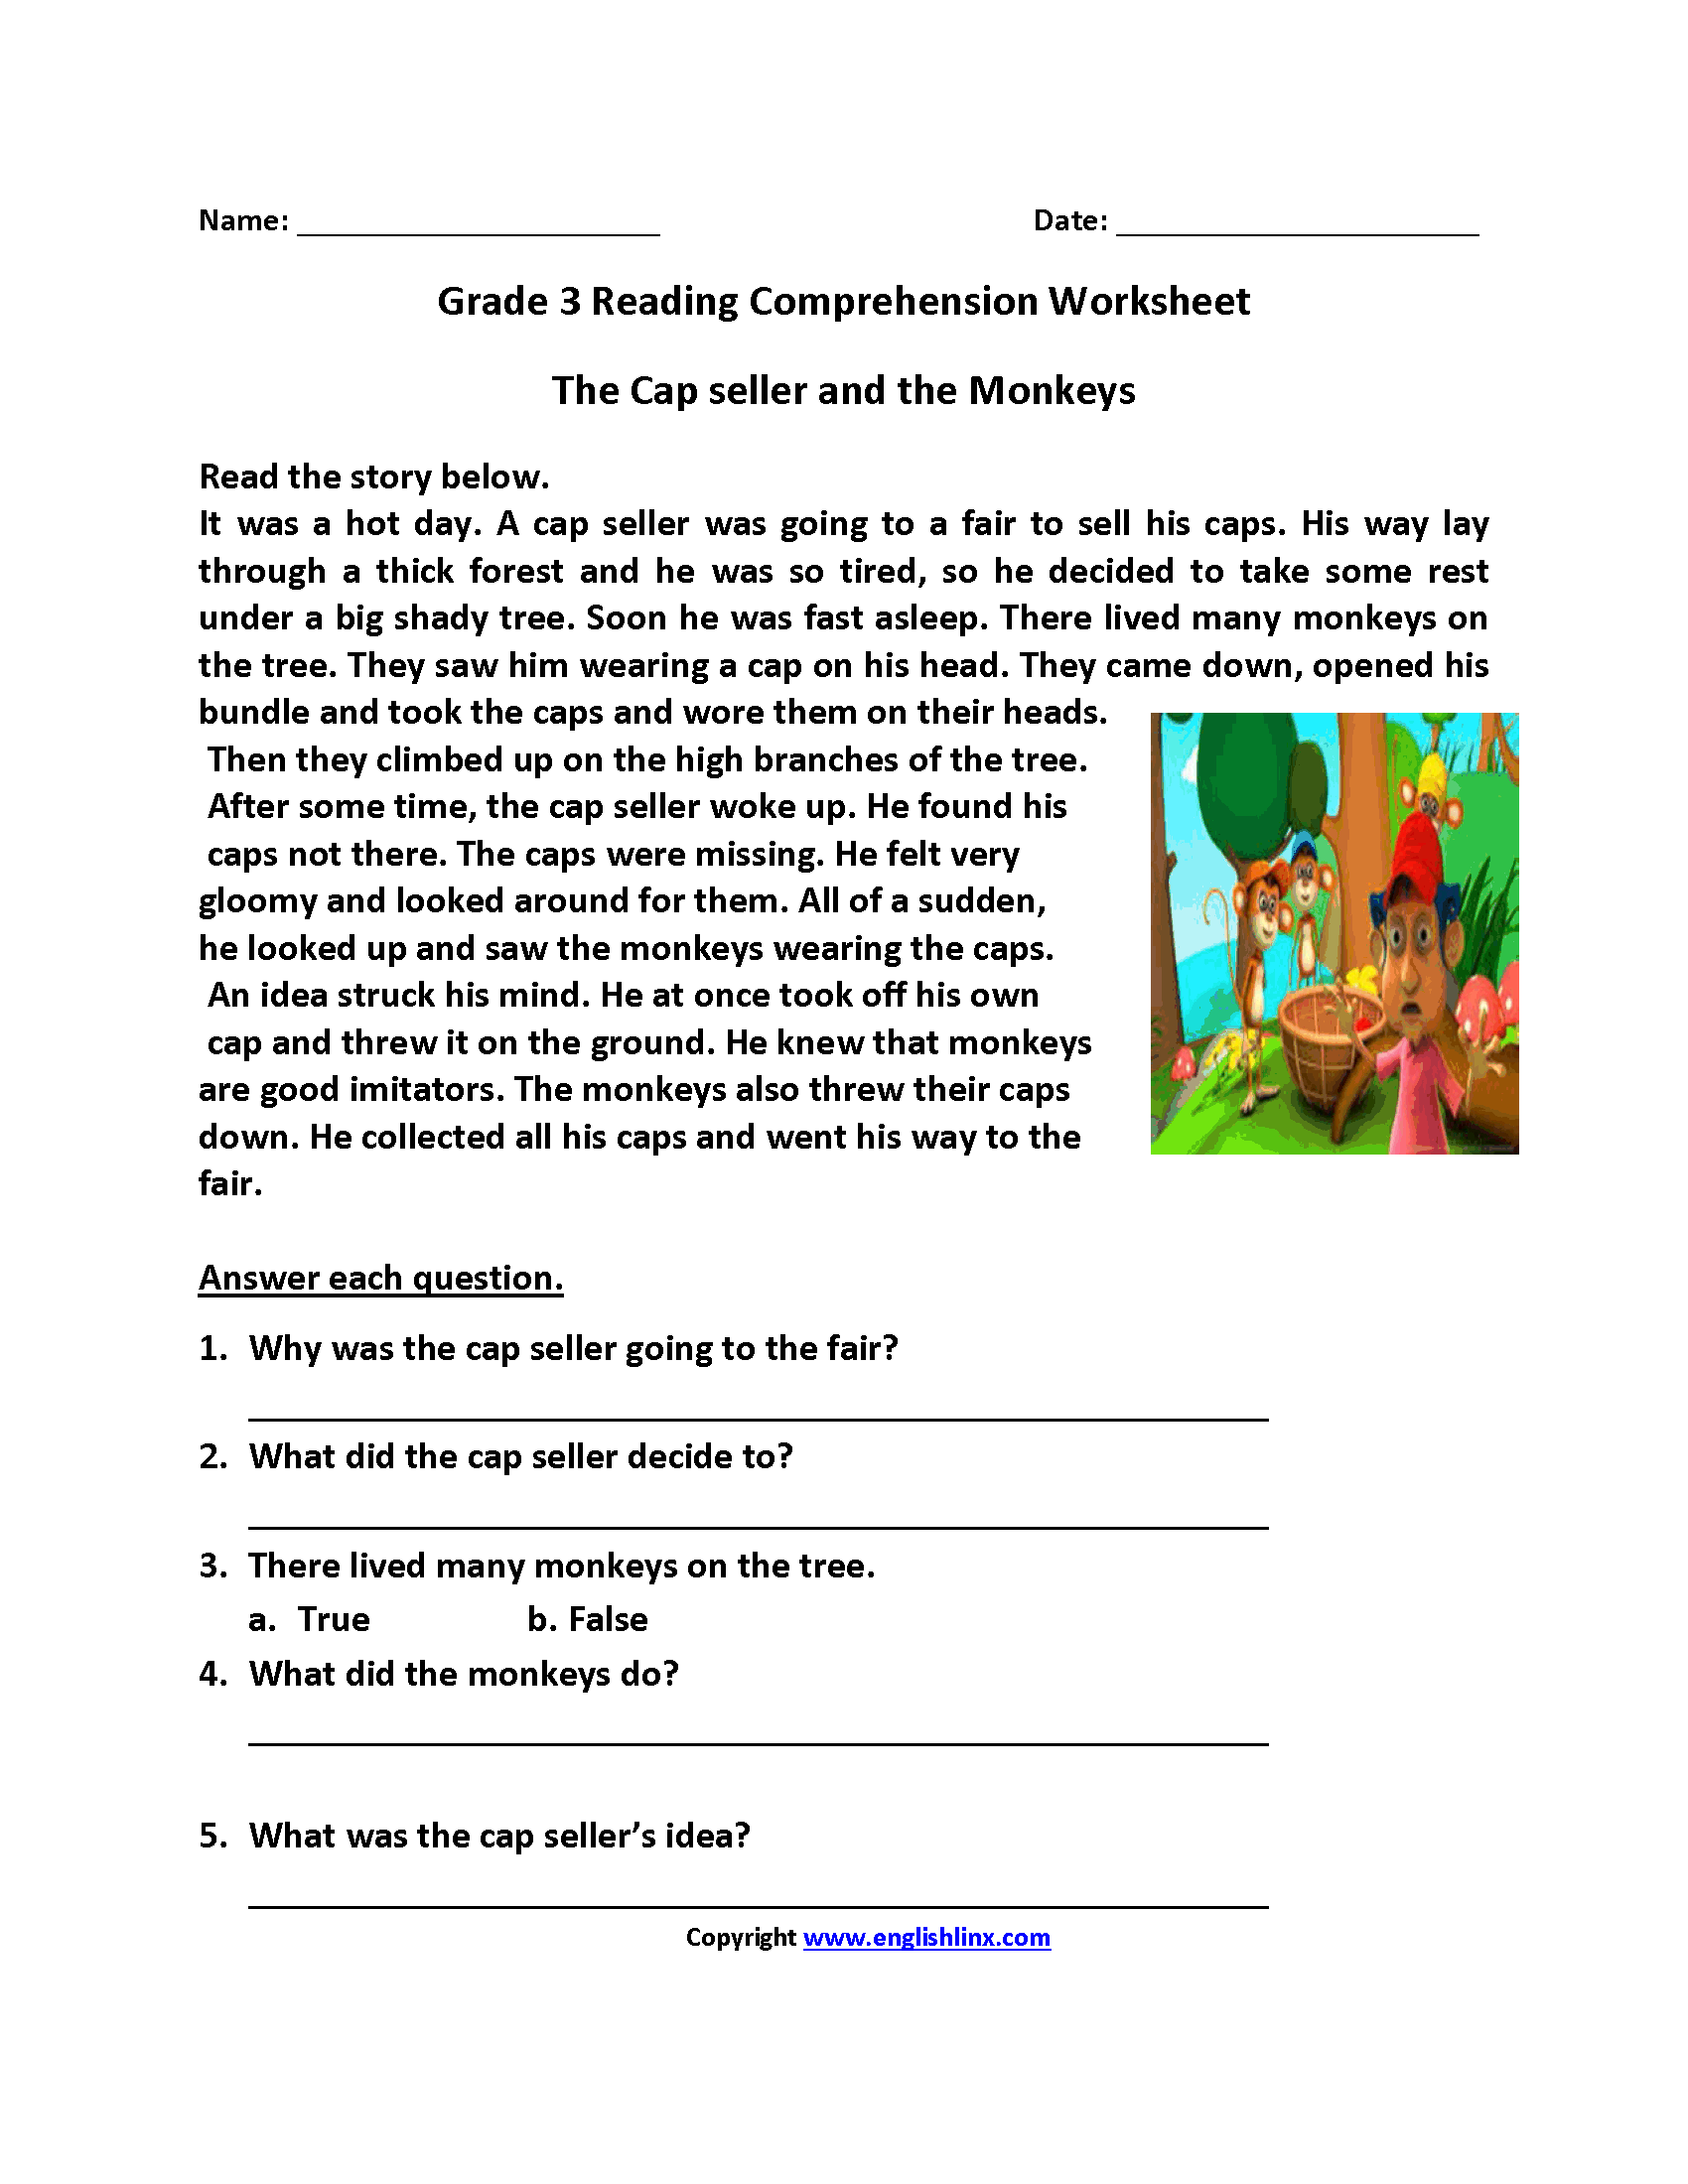 Worksheets Third Grade Reading Comprehension Worksheets cap seller and monkeys third grade reading worksheets classroom worksheets